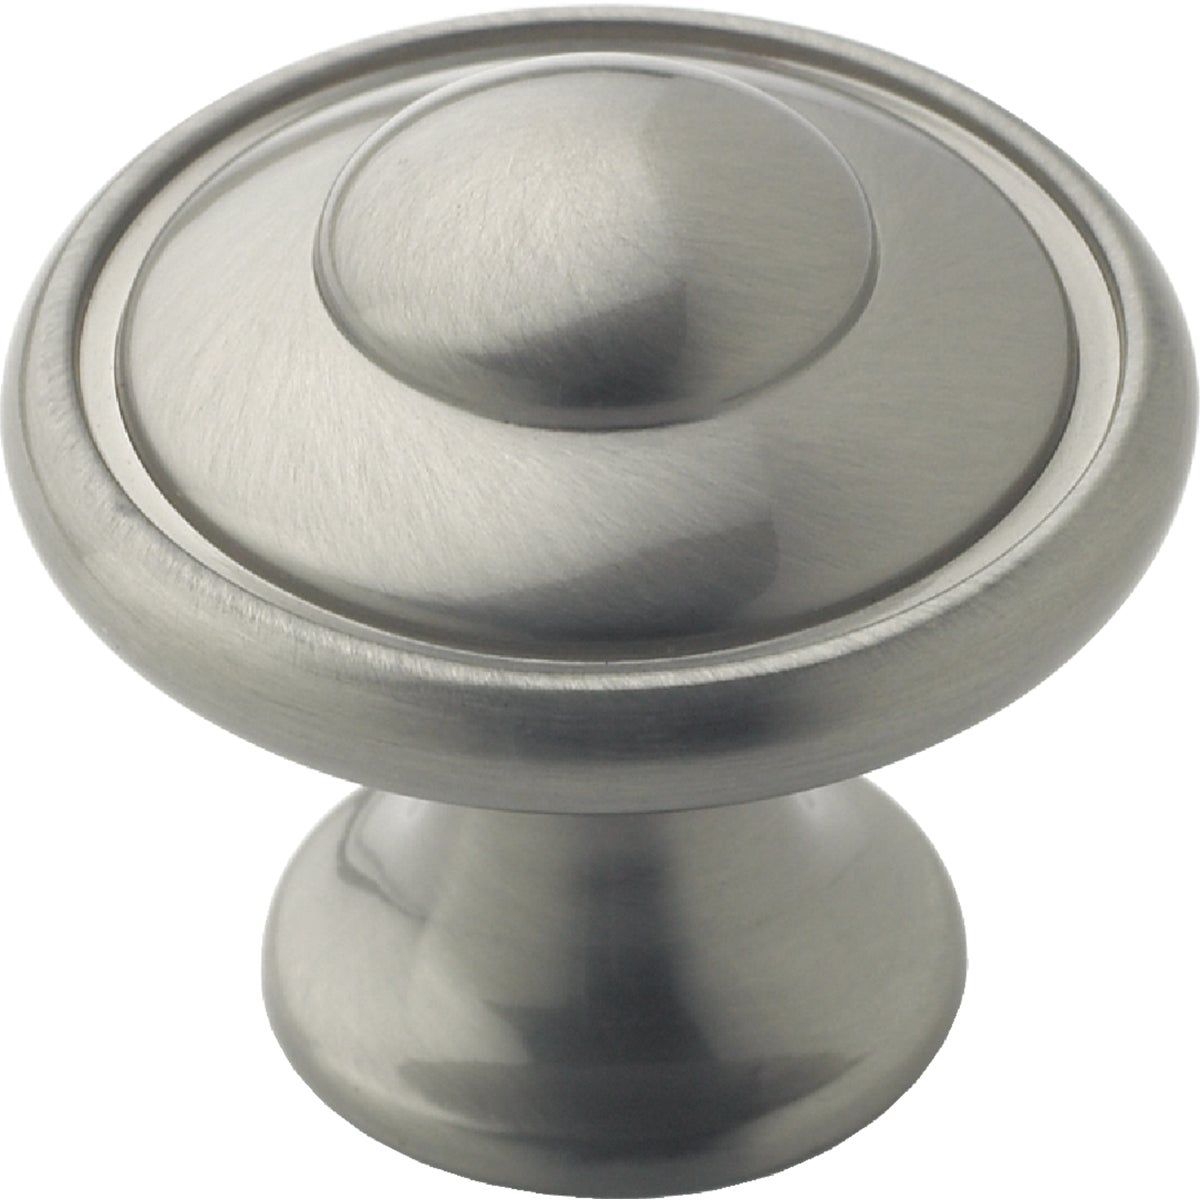 "1-3/16"" SATN NICKEL KNOB - BP53002G10 by Amerock Corporation"